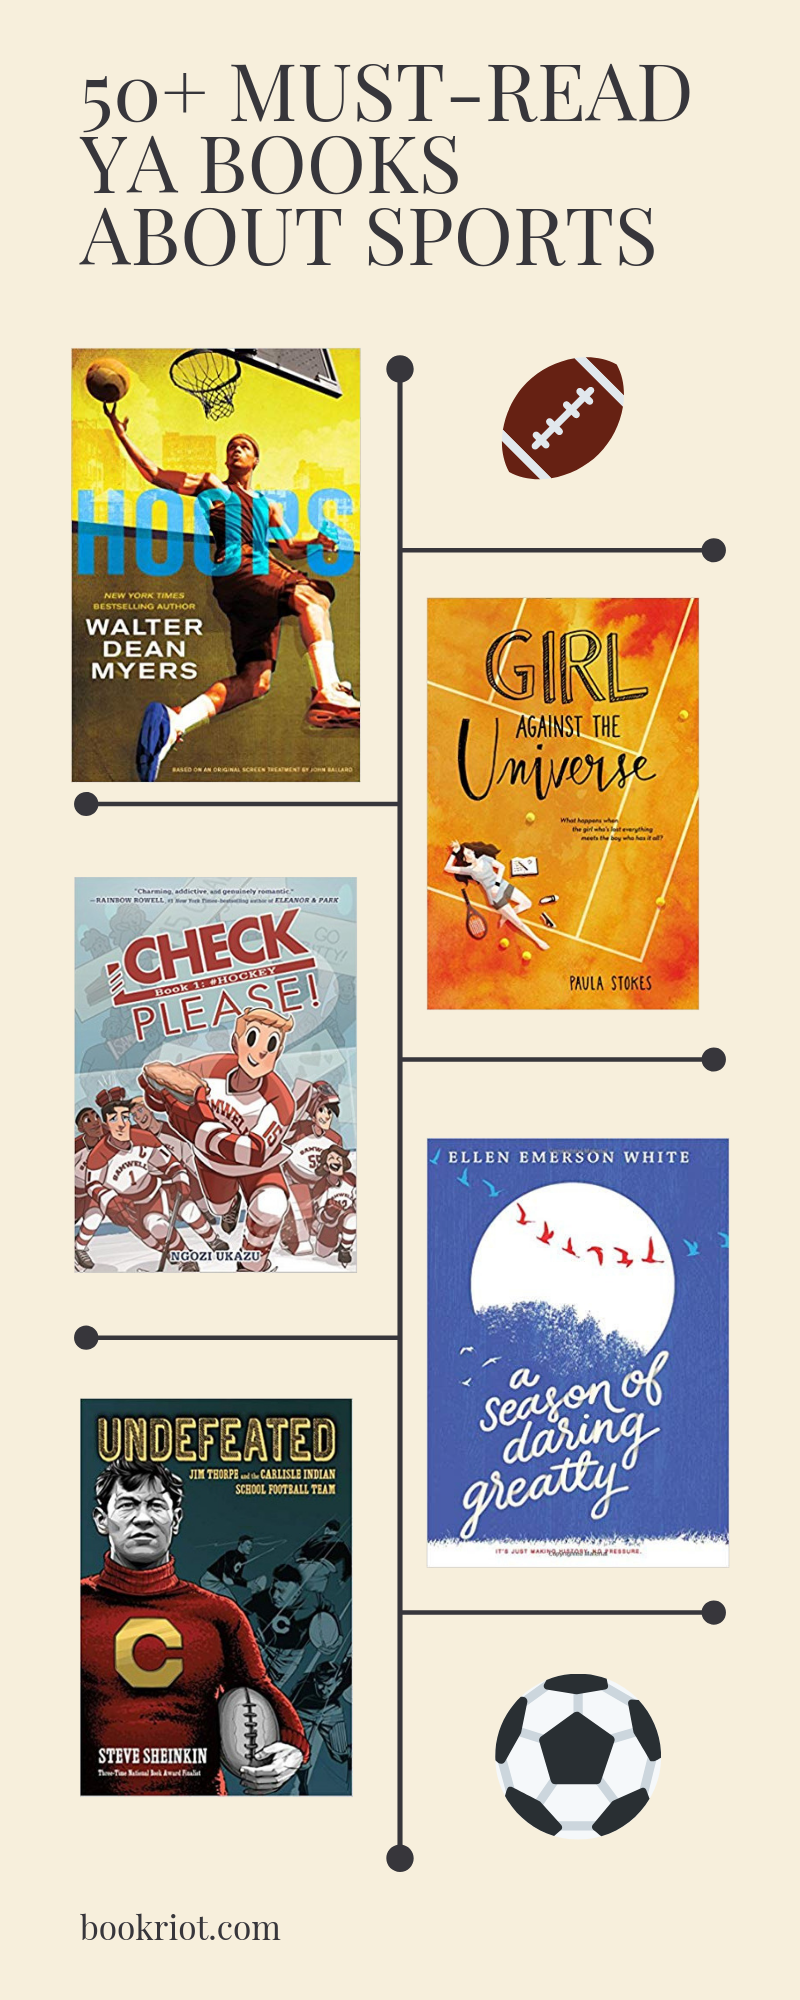 Over 50 outstanding YA books about sports for all types of readers and athletic enthusiasts. book lists | YA books | YA books about sports | YA sports books | Young Adult books | sports books | sports fiction | sports nonfiction | nonfiction books | #YALit